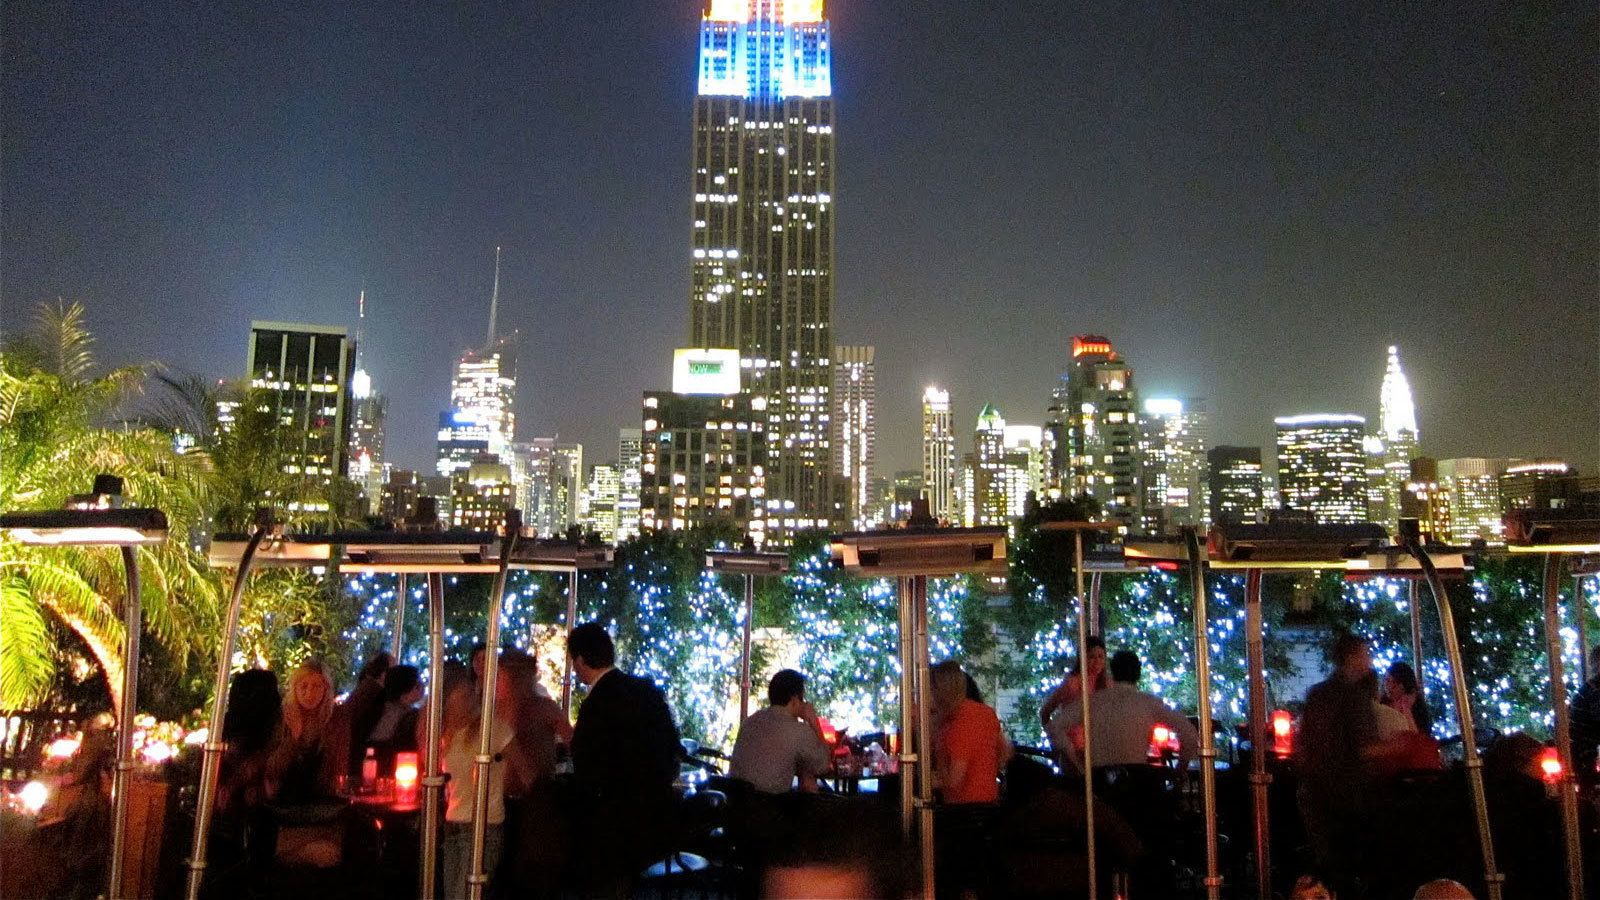 Landscape view of visitors at the monarch rooftop new york